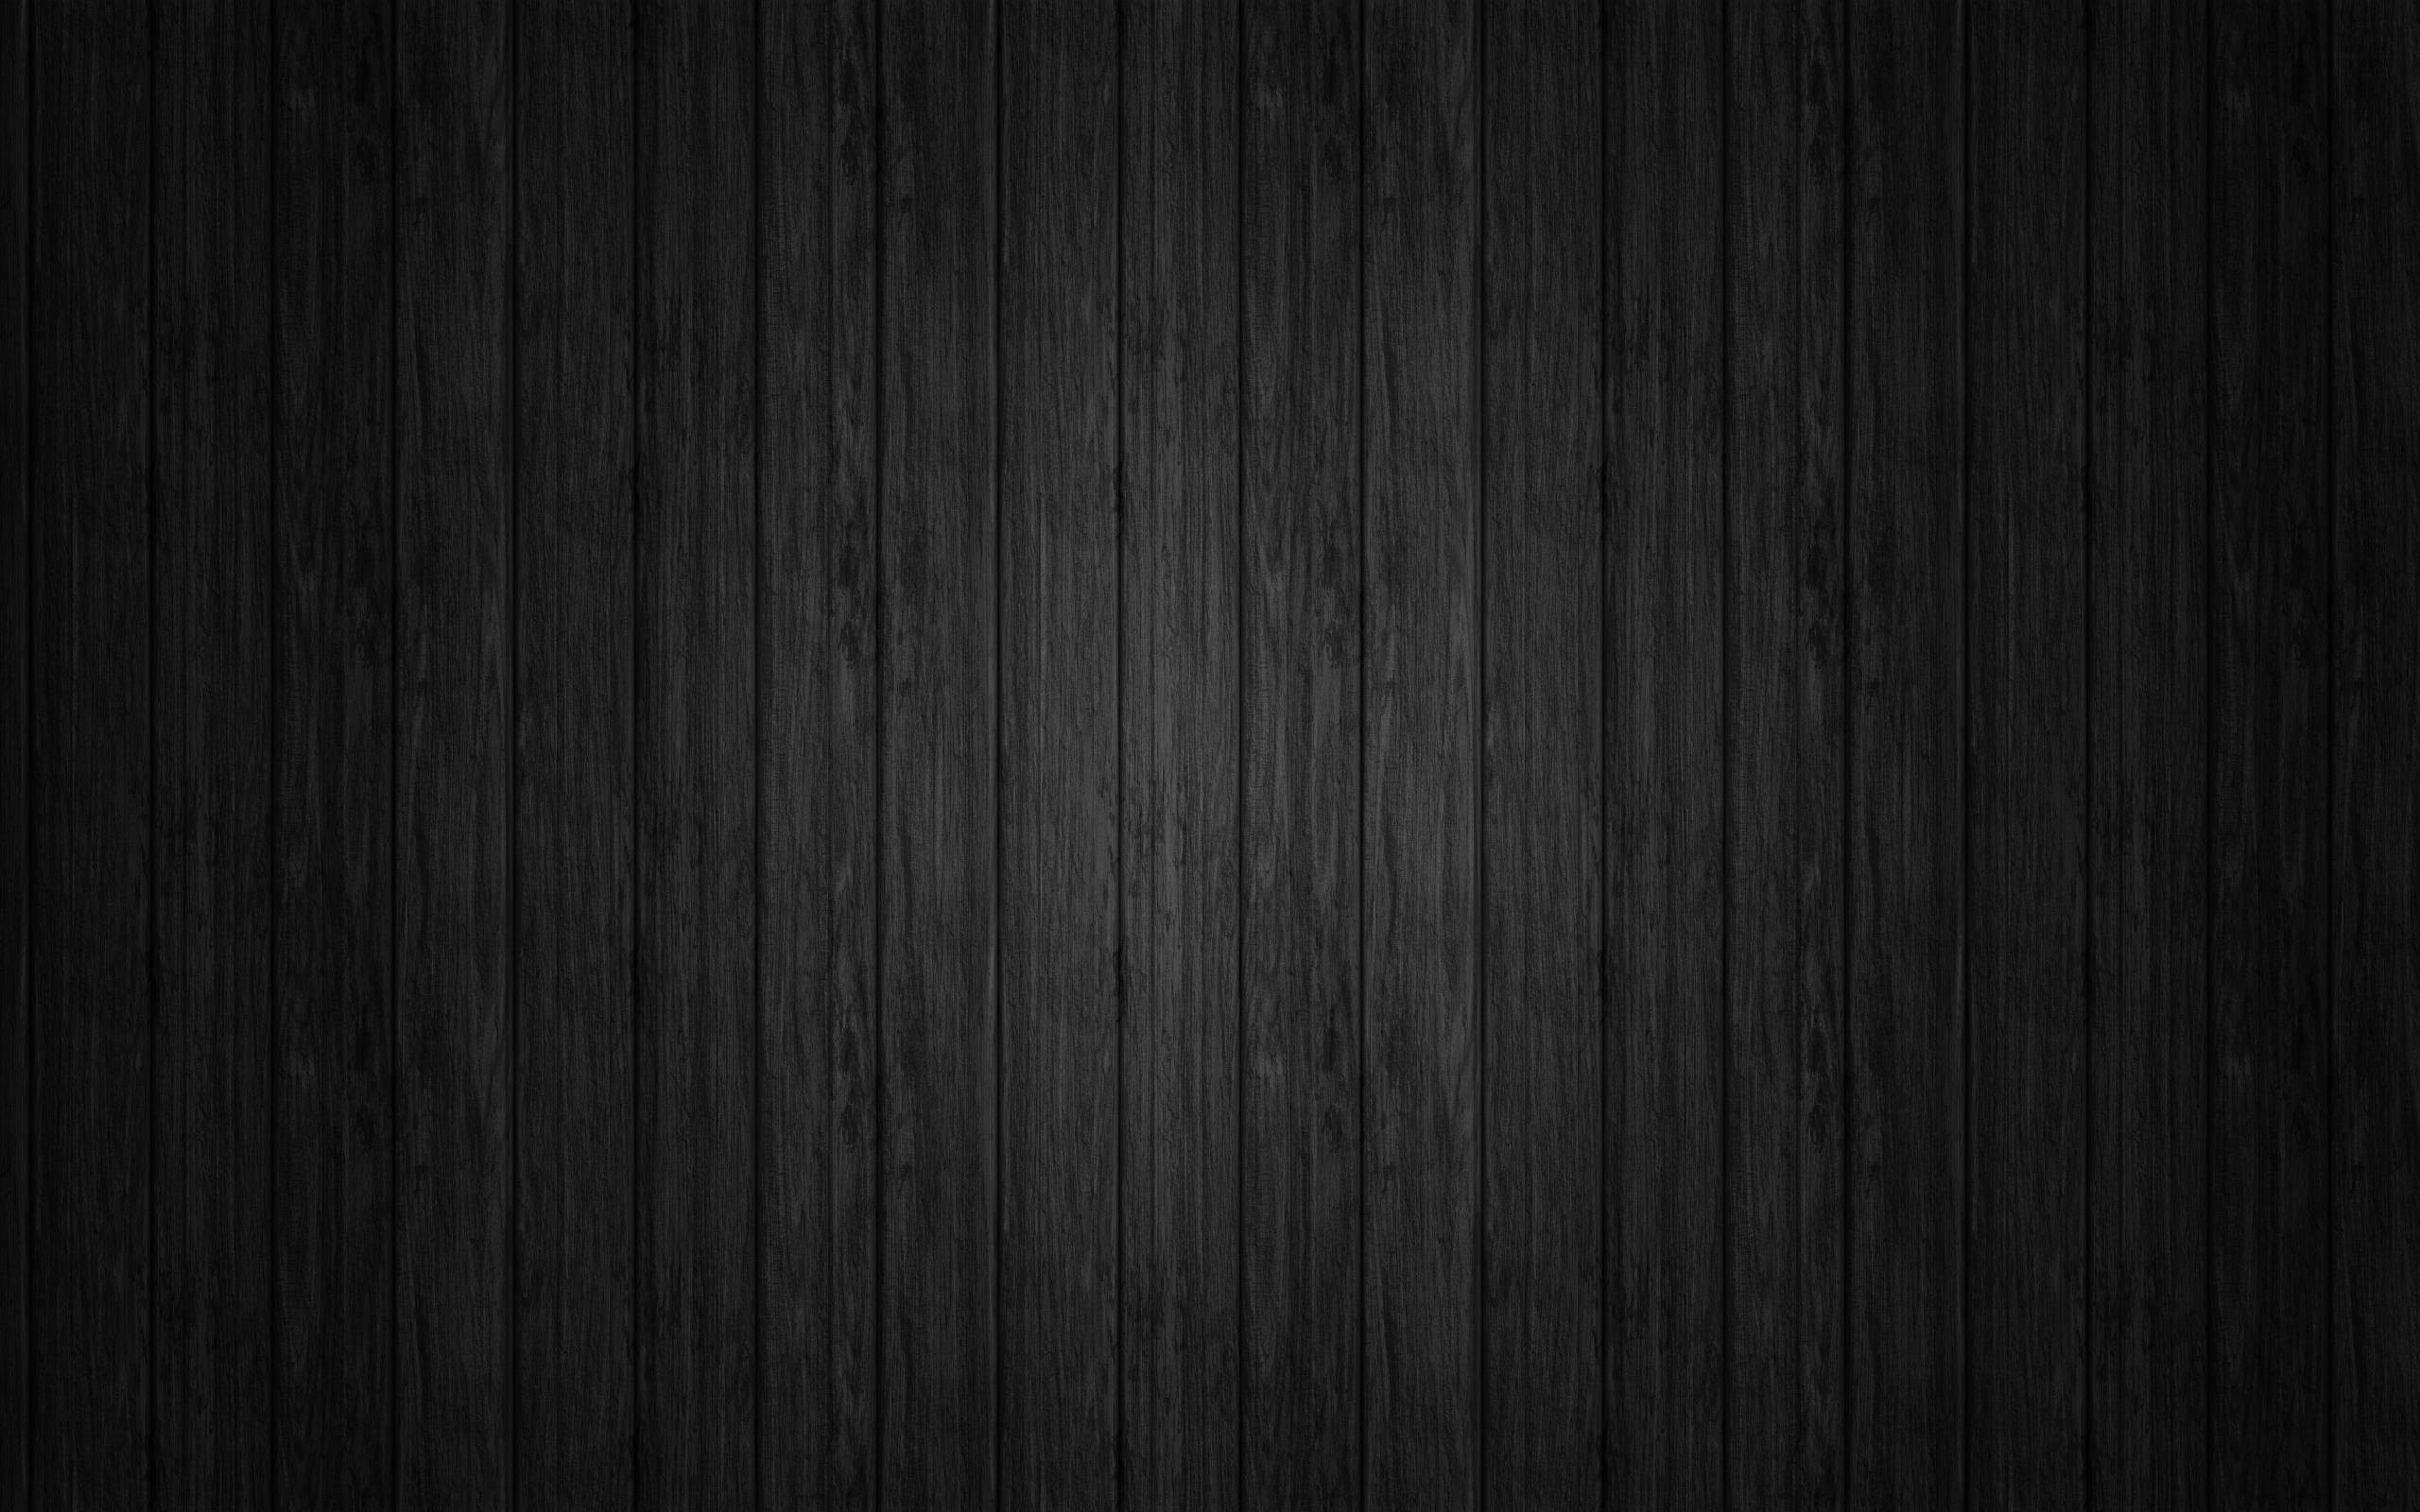 2560x1600 Dark Wood Wallpapers - Full HD wallpaper search